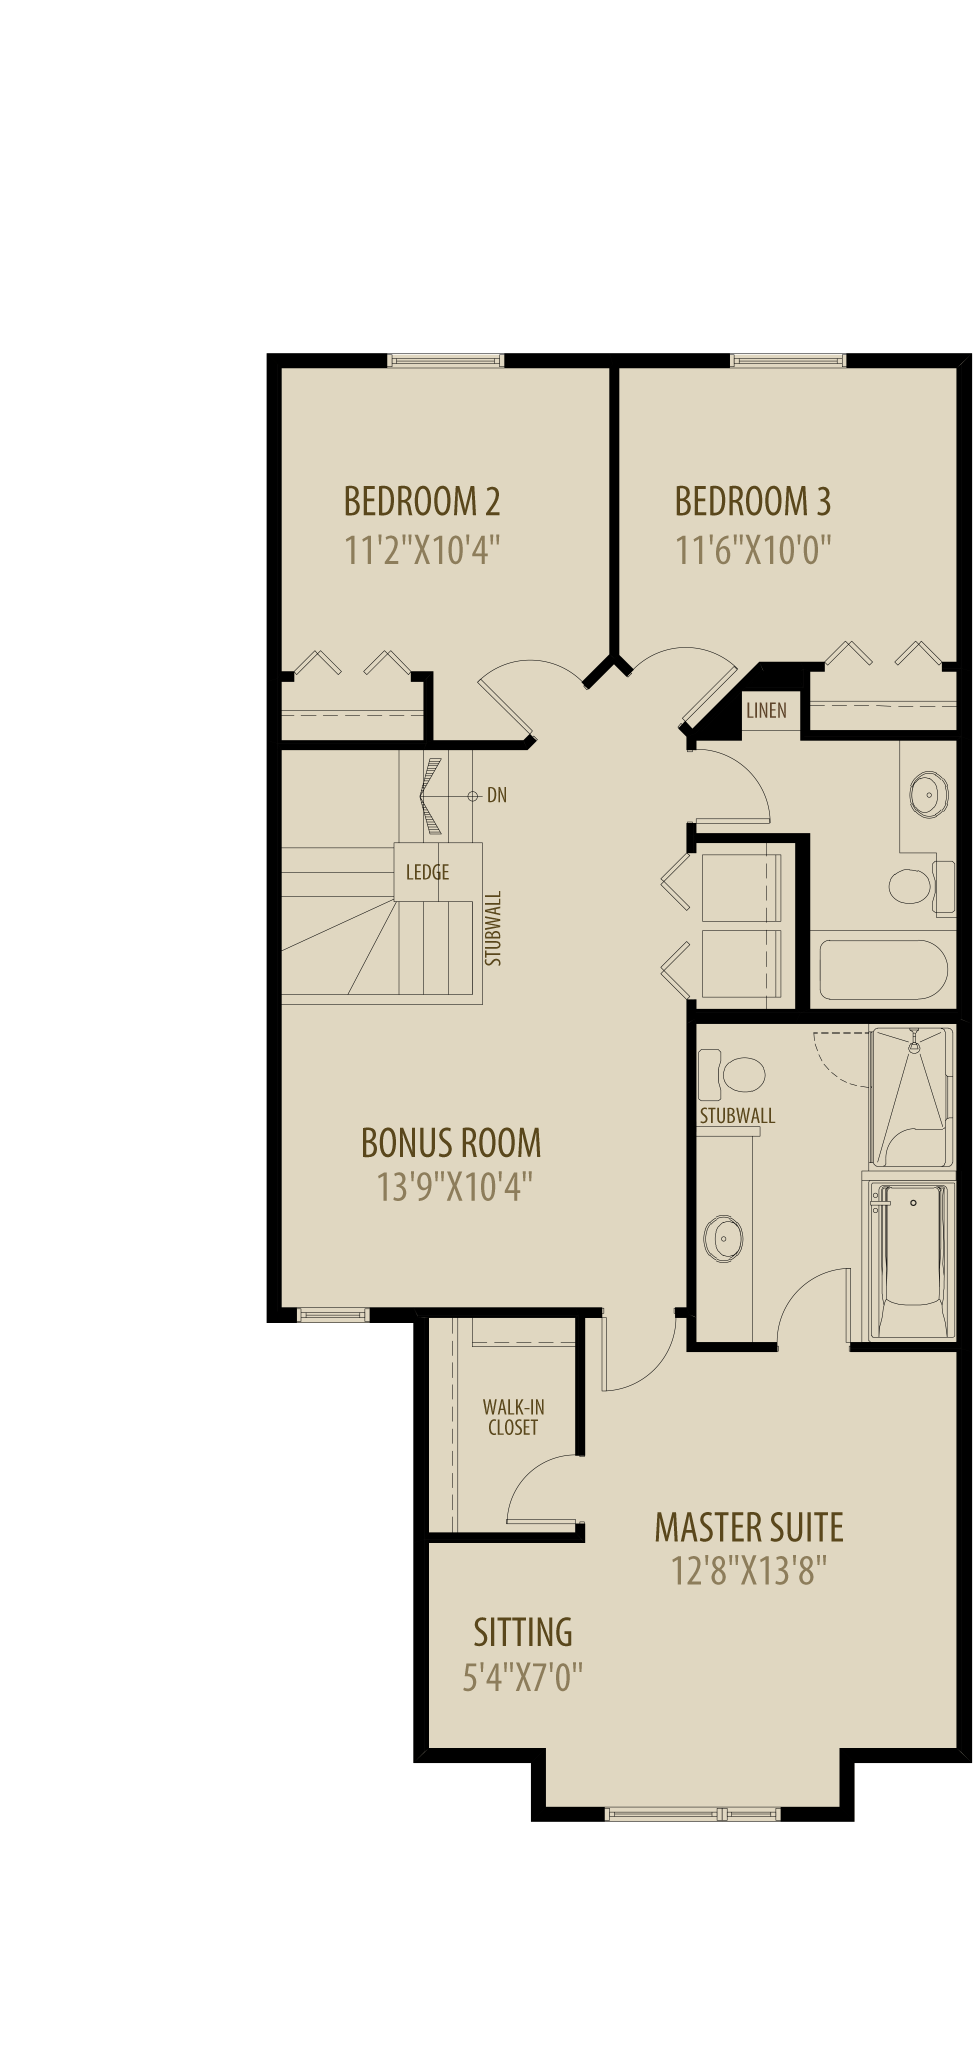 Optional Bonus Room Adds 241Sq Ft